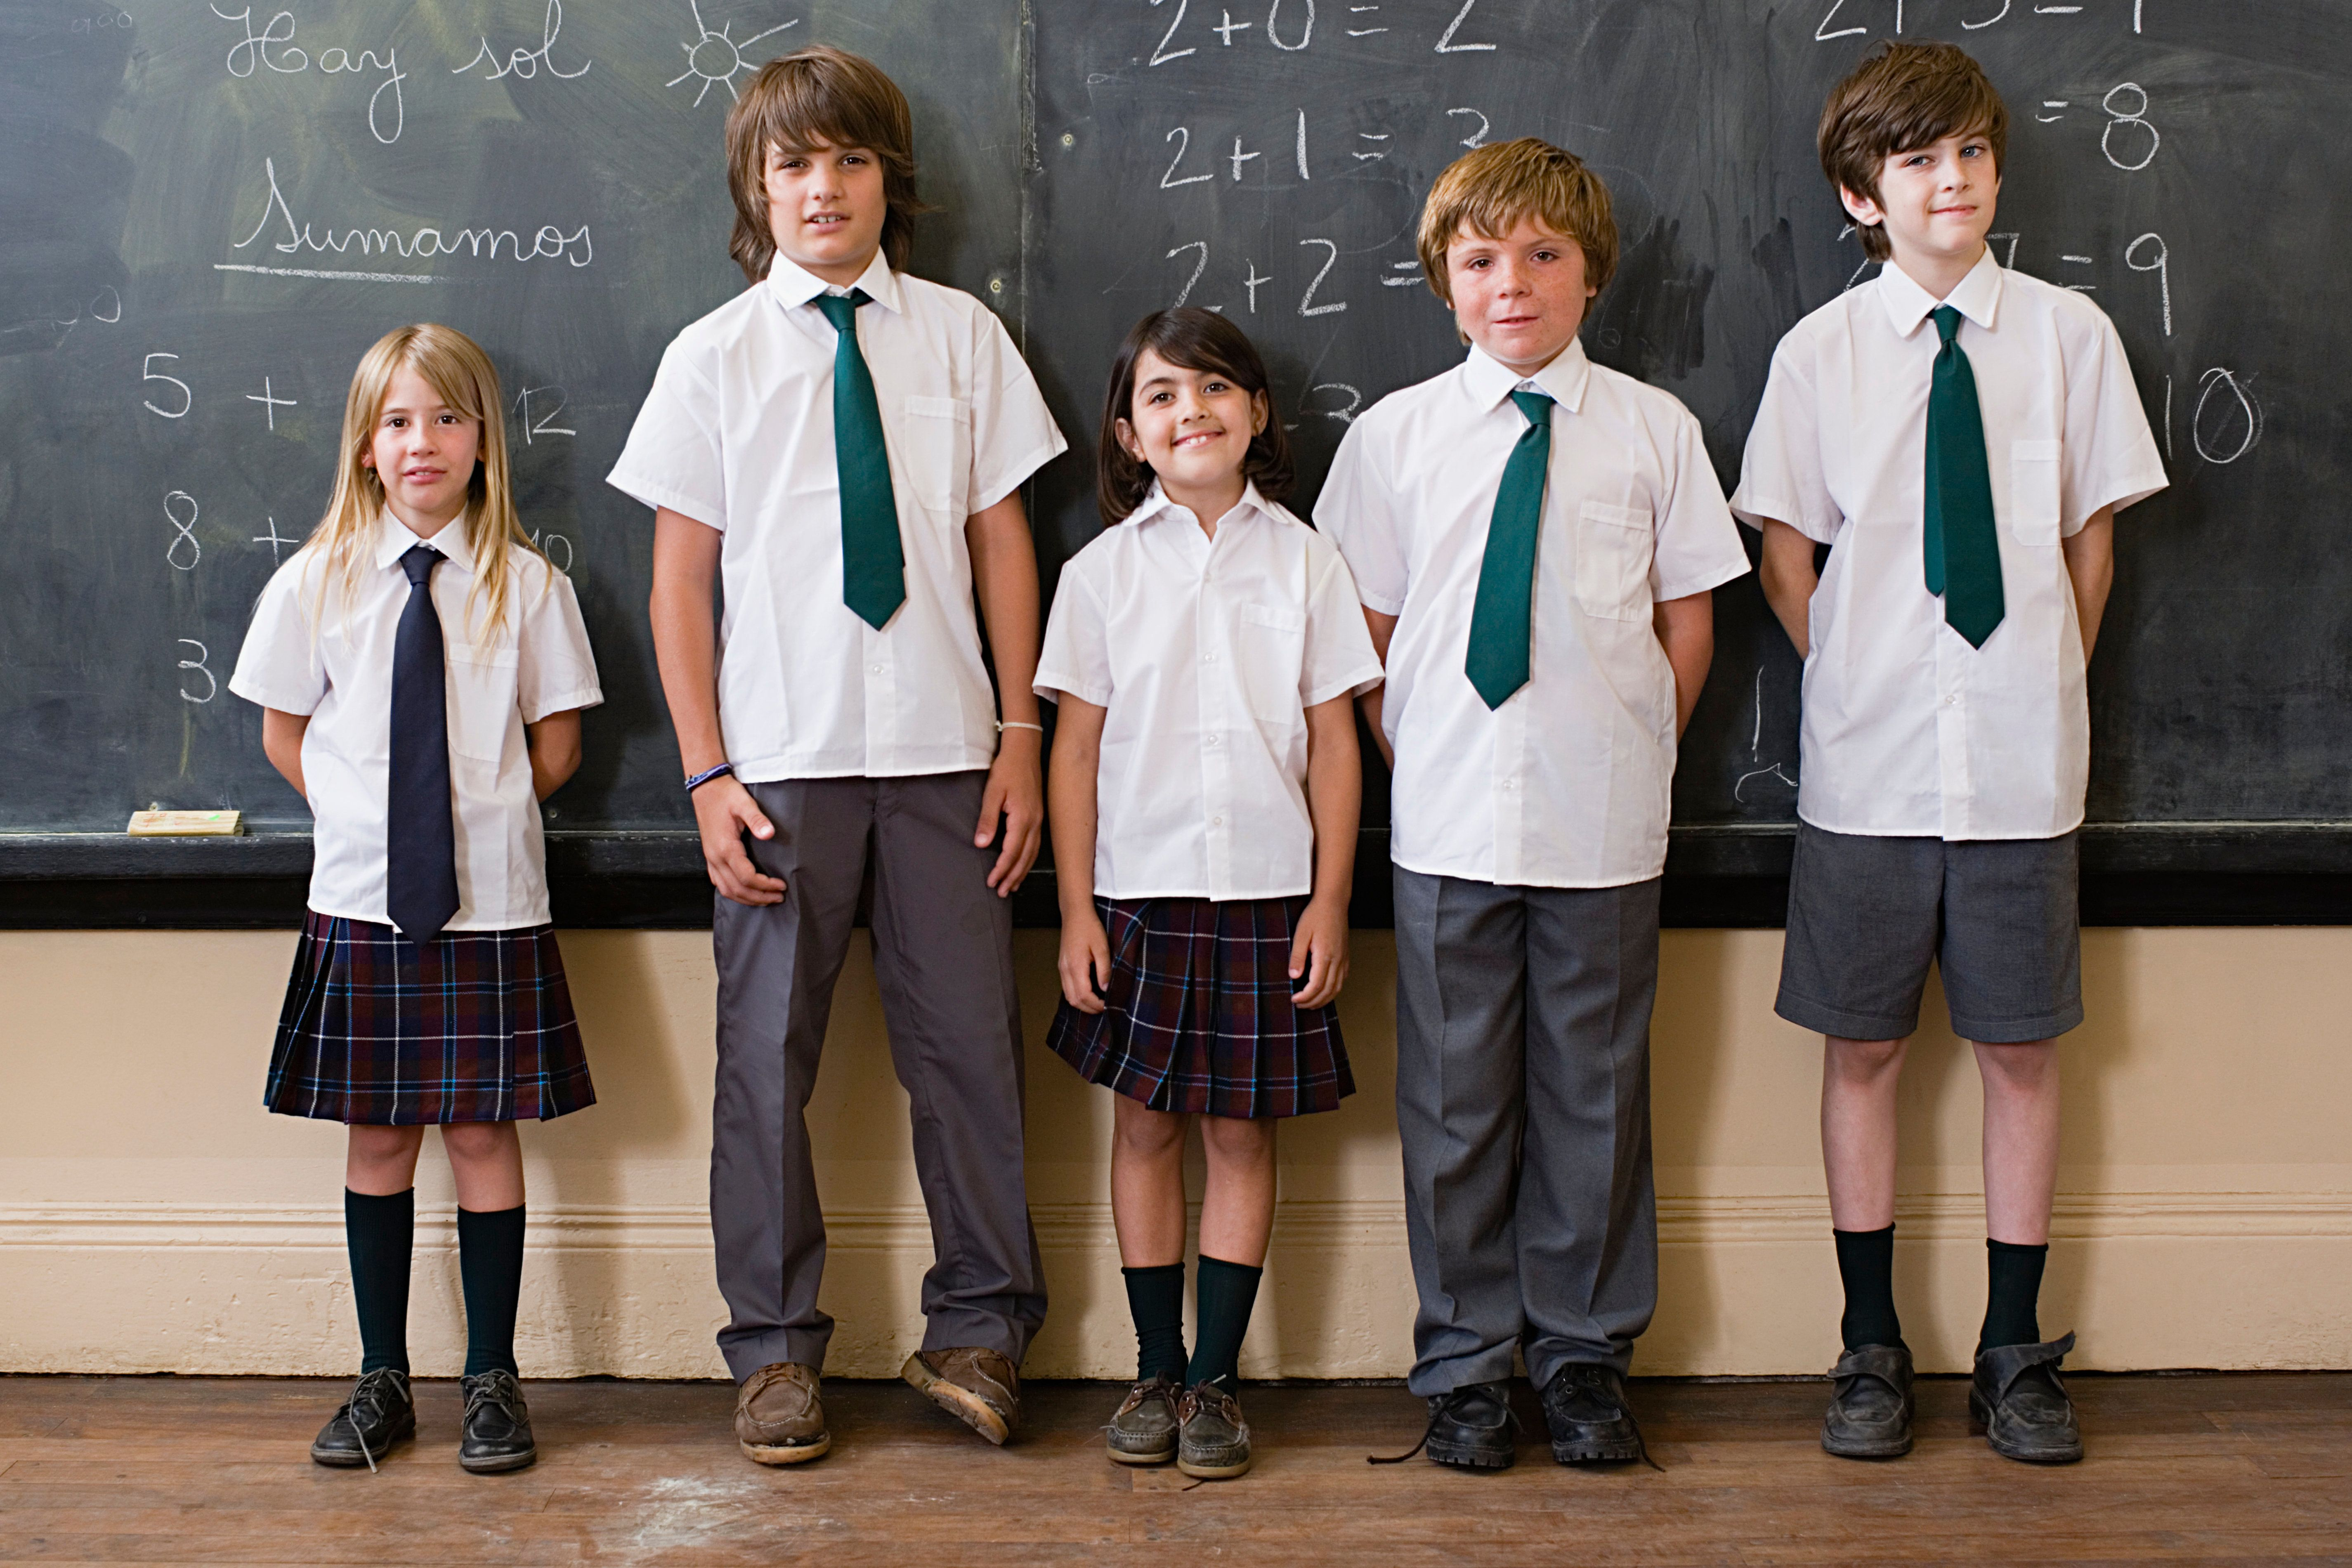 Mum Explains Why She Is 'Bitterly Disappointed' That School Uniform Is Still Gendered In